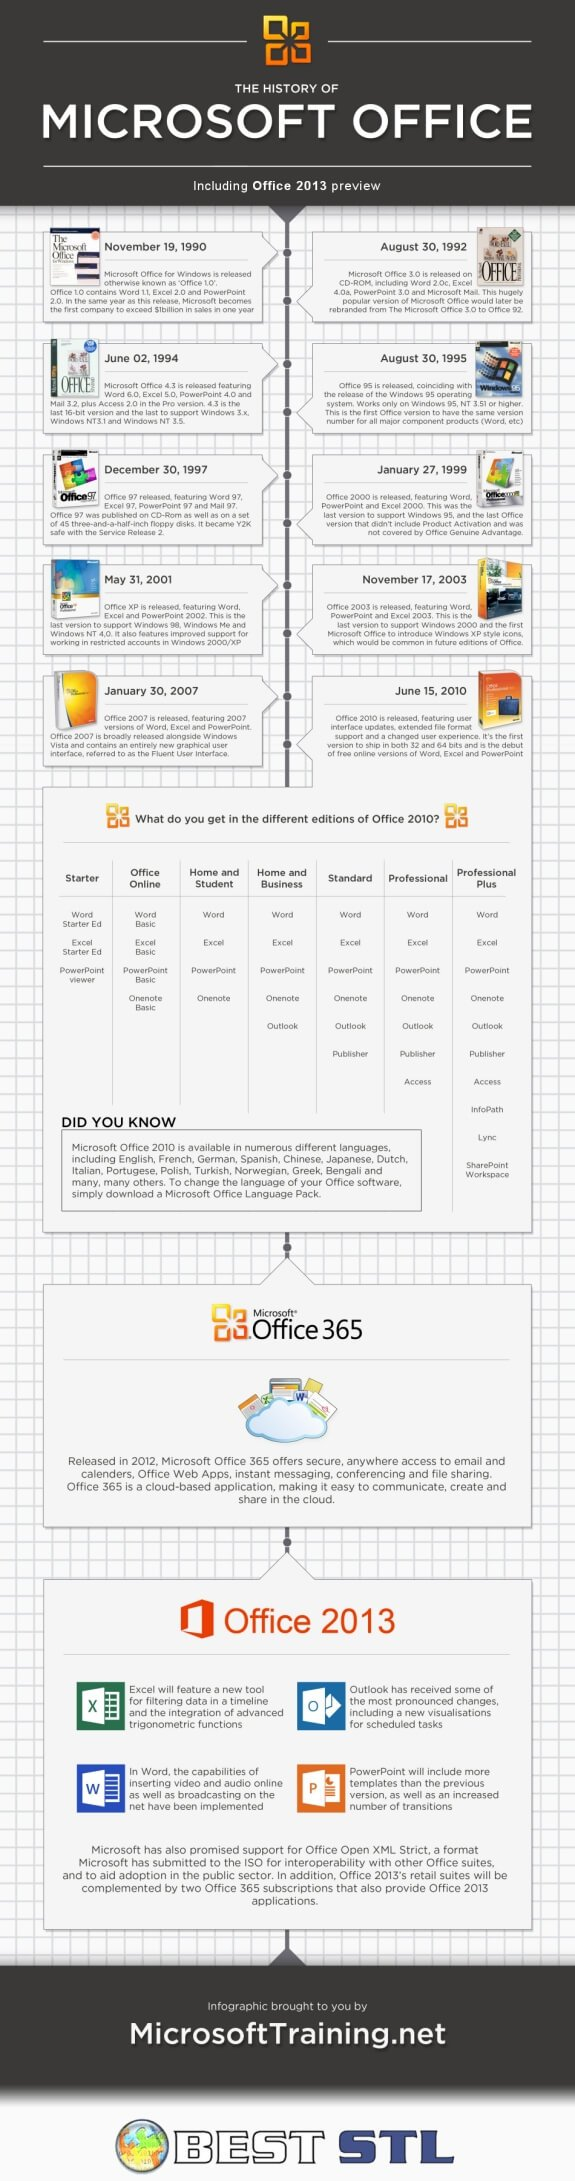 The History of Microsoft Office